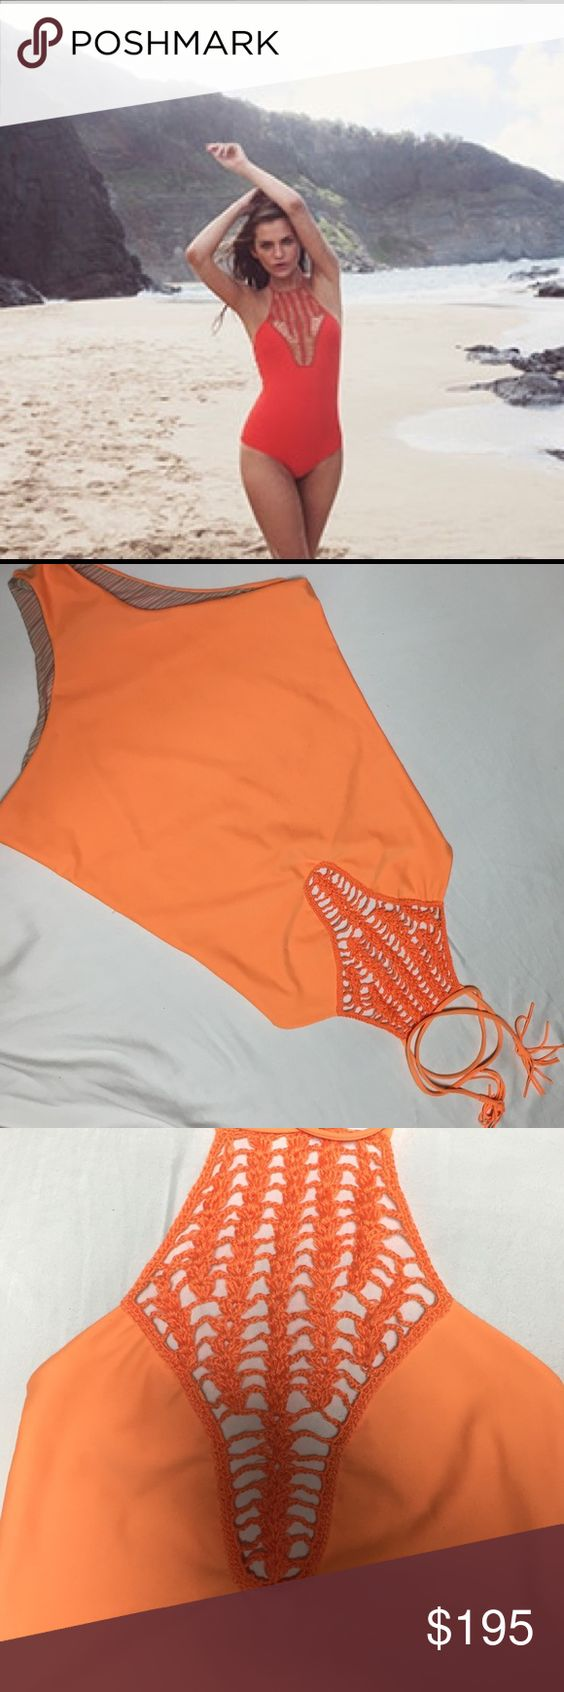 "150🅿️🅿️ Acacia teahupoo one piece Teahupoo one piece. Orange color I think it may be called ""sunset"". Size medium, excellent condition. Not personally worn but me. Make offers. Im open to trades❤️ the first picture is not mines its just to show how it looks on acacia swimwear Swim One Pieces"